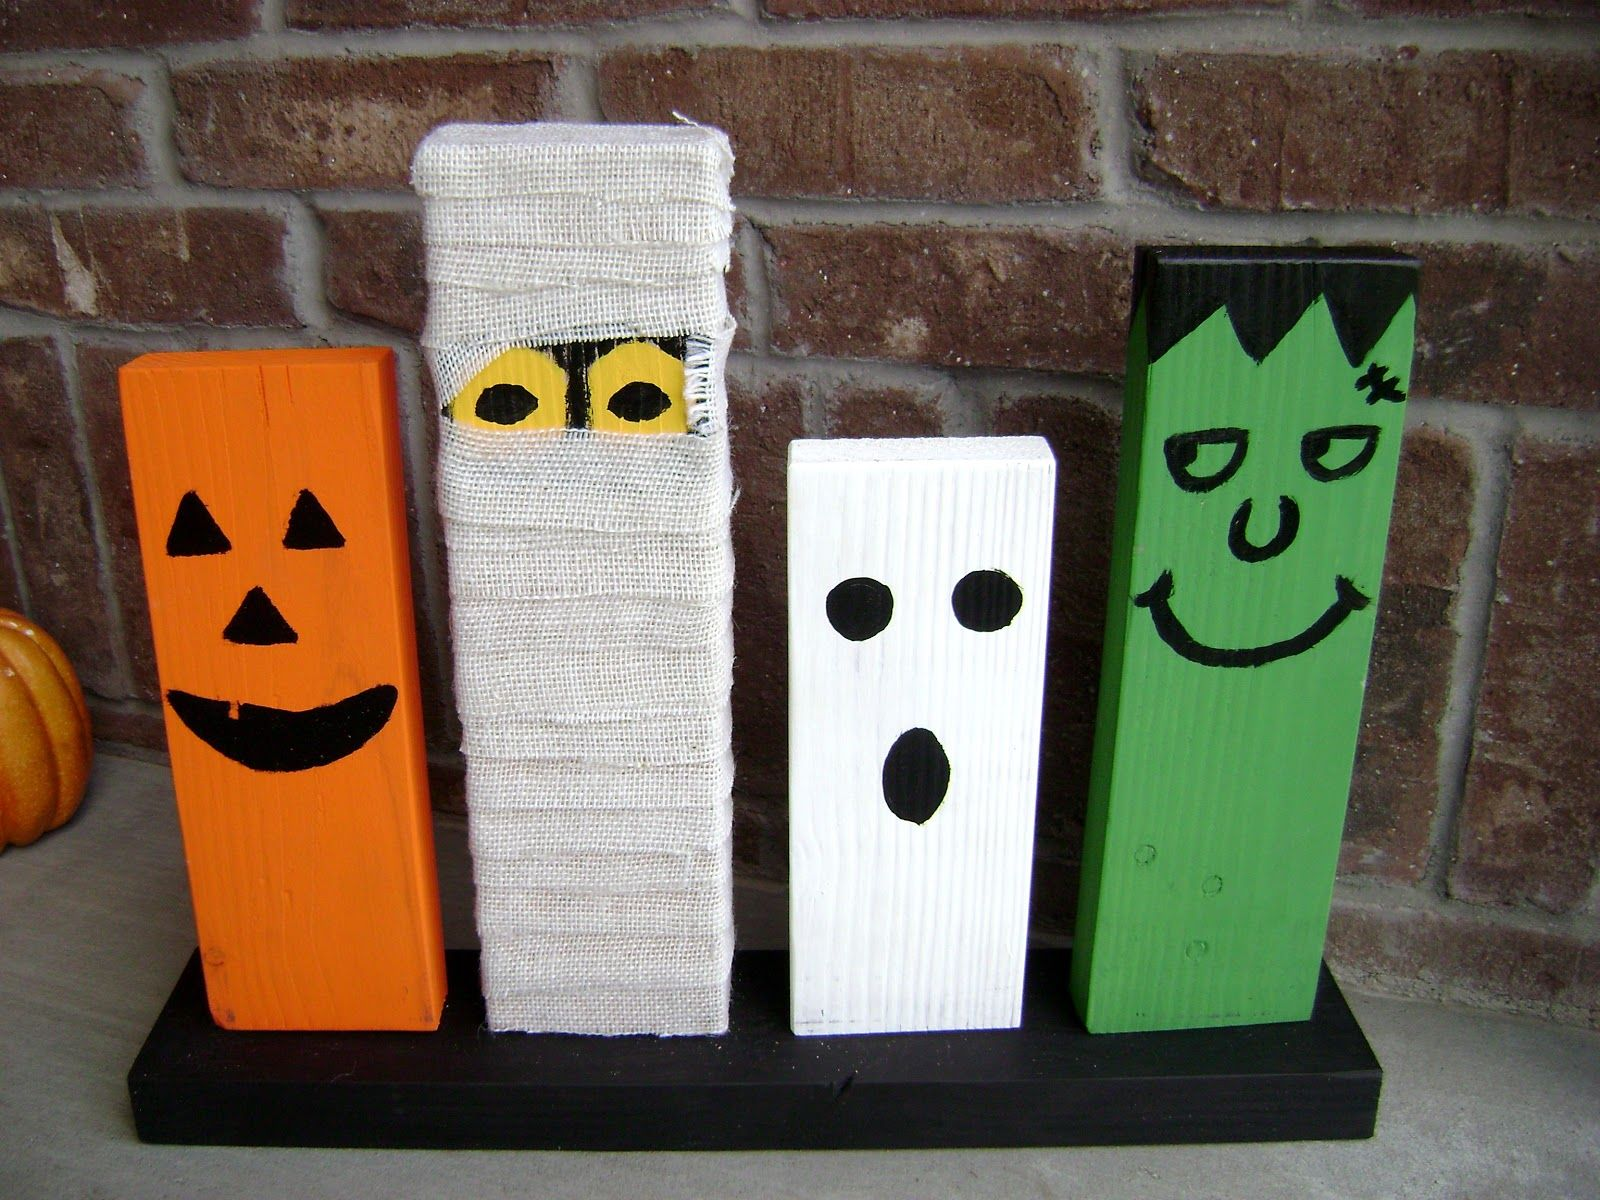 Cute halloween decorations to make - Halloween Home Made Decorations Latest Window Monsters U Easy Cute Halloween Decorations